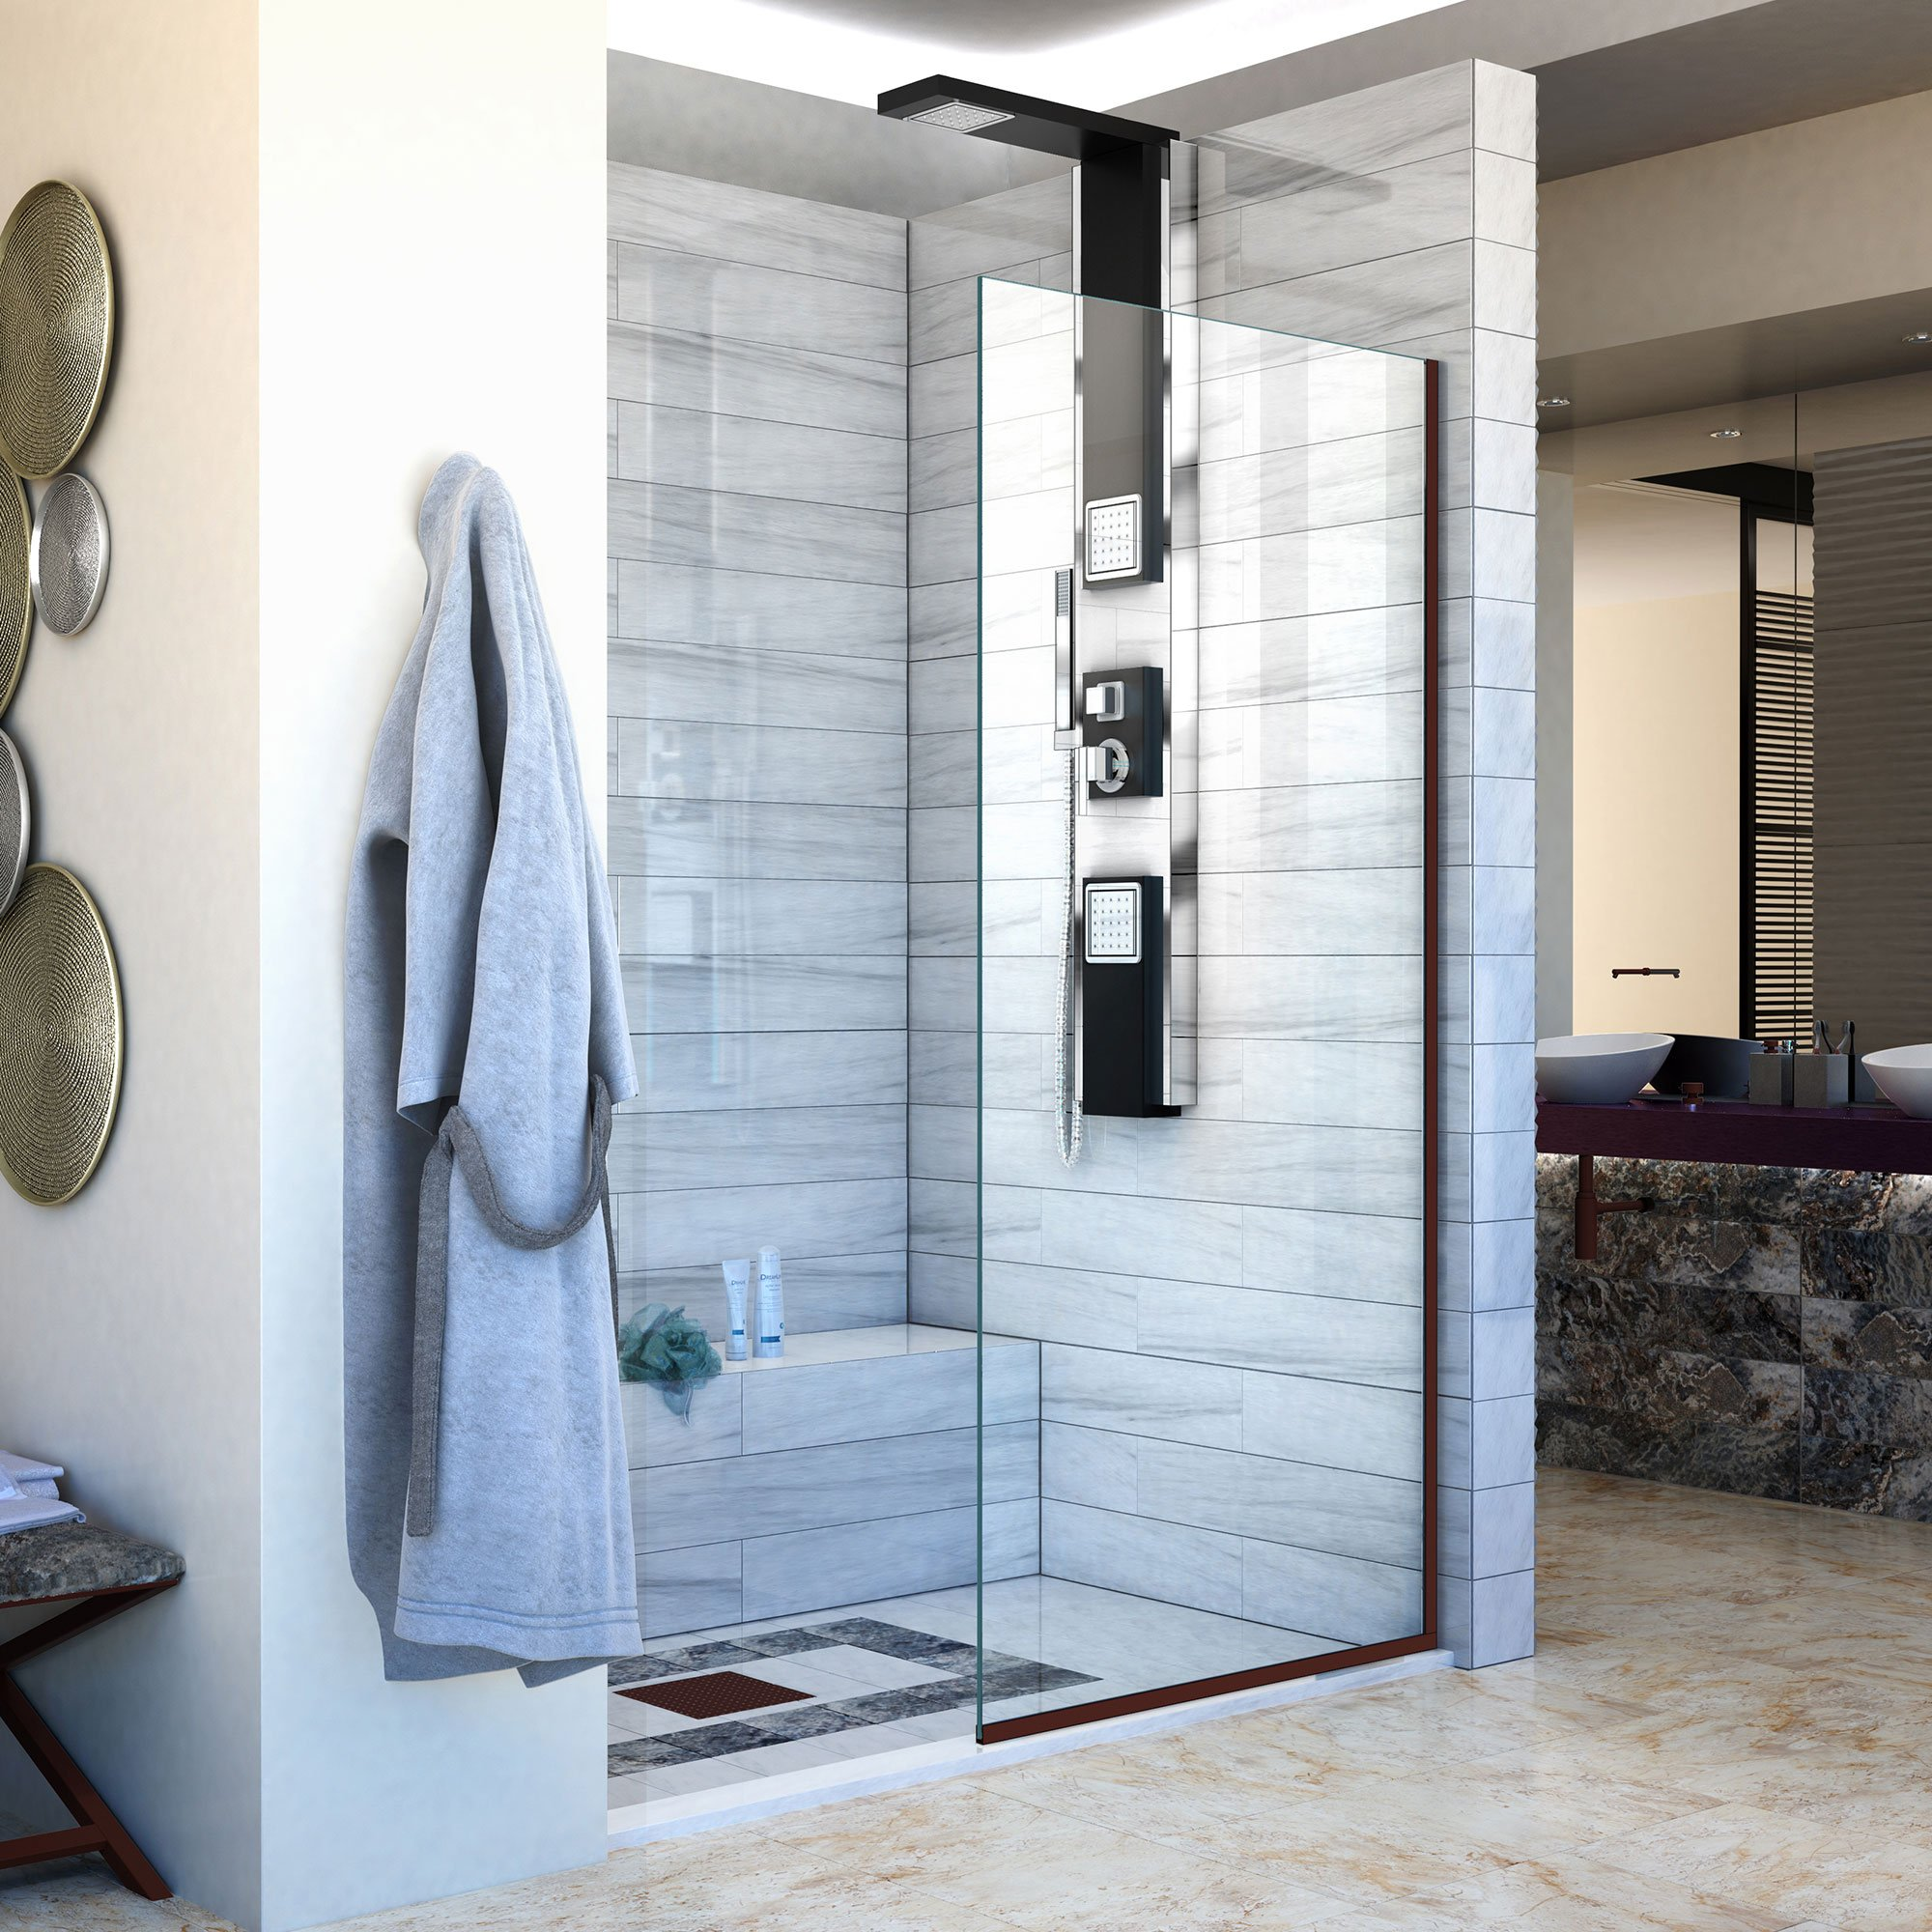 DreamLine Linea 30 in. Width, Frameless Shower Door, 3/8'' Glass, Oil Rubbed Bronze Finish by DreamLine